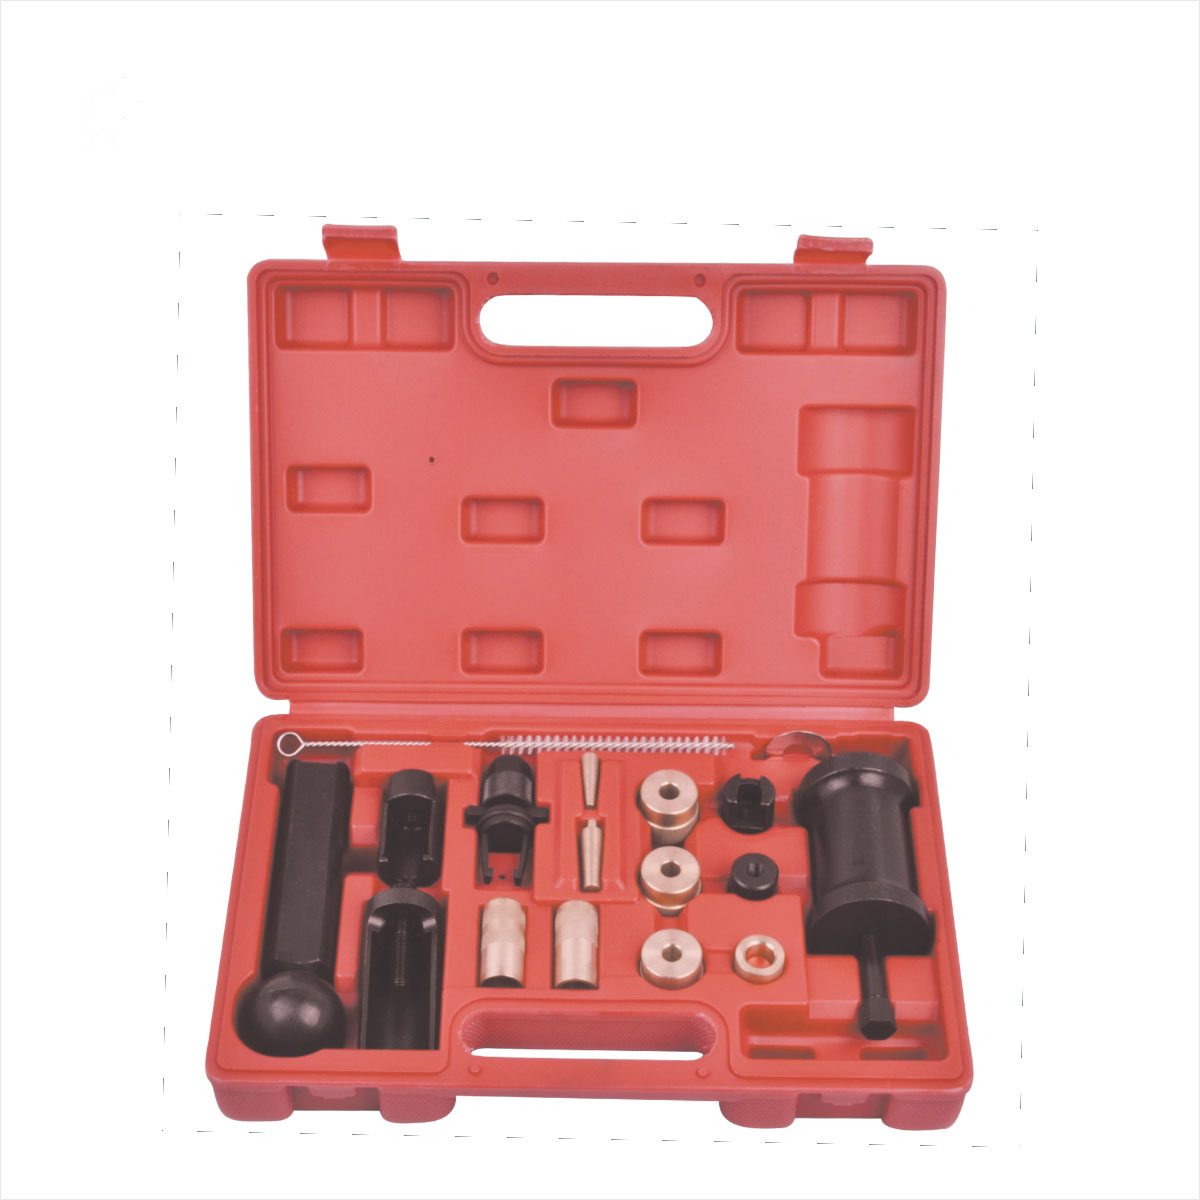 Wohnzimmer Industrial Petrol 18pc Injector Puller Removal Installer Tools Set For Vag Audi Vw Fsi Petrol